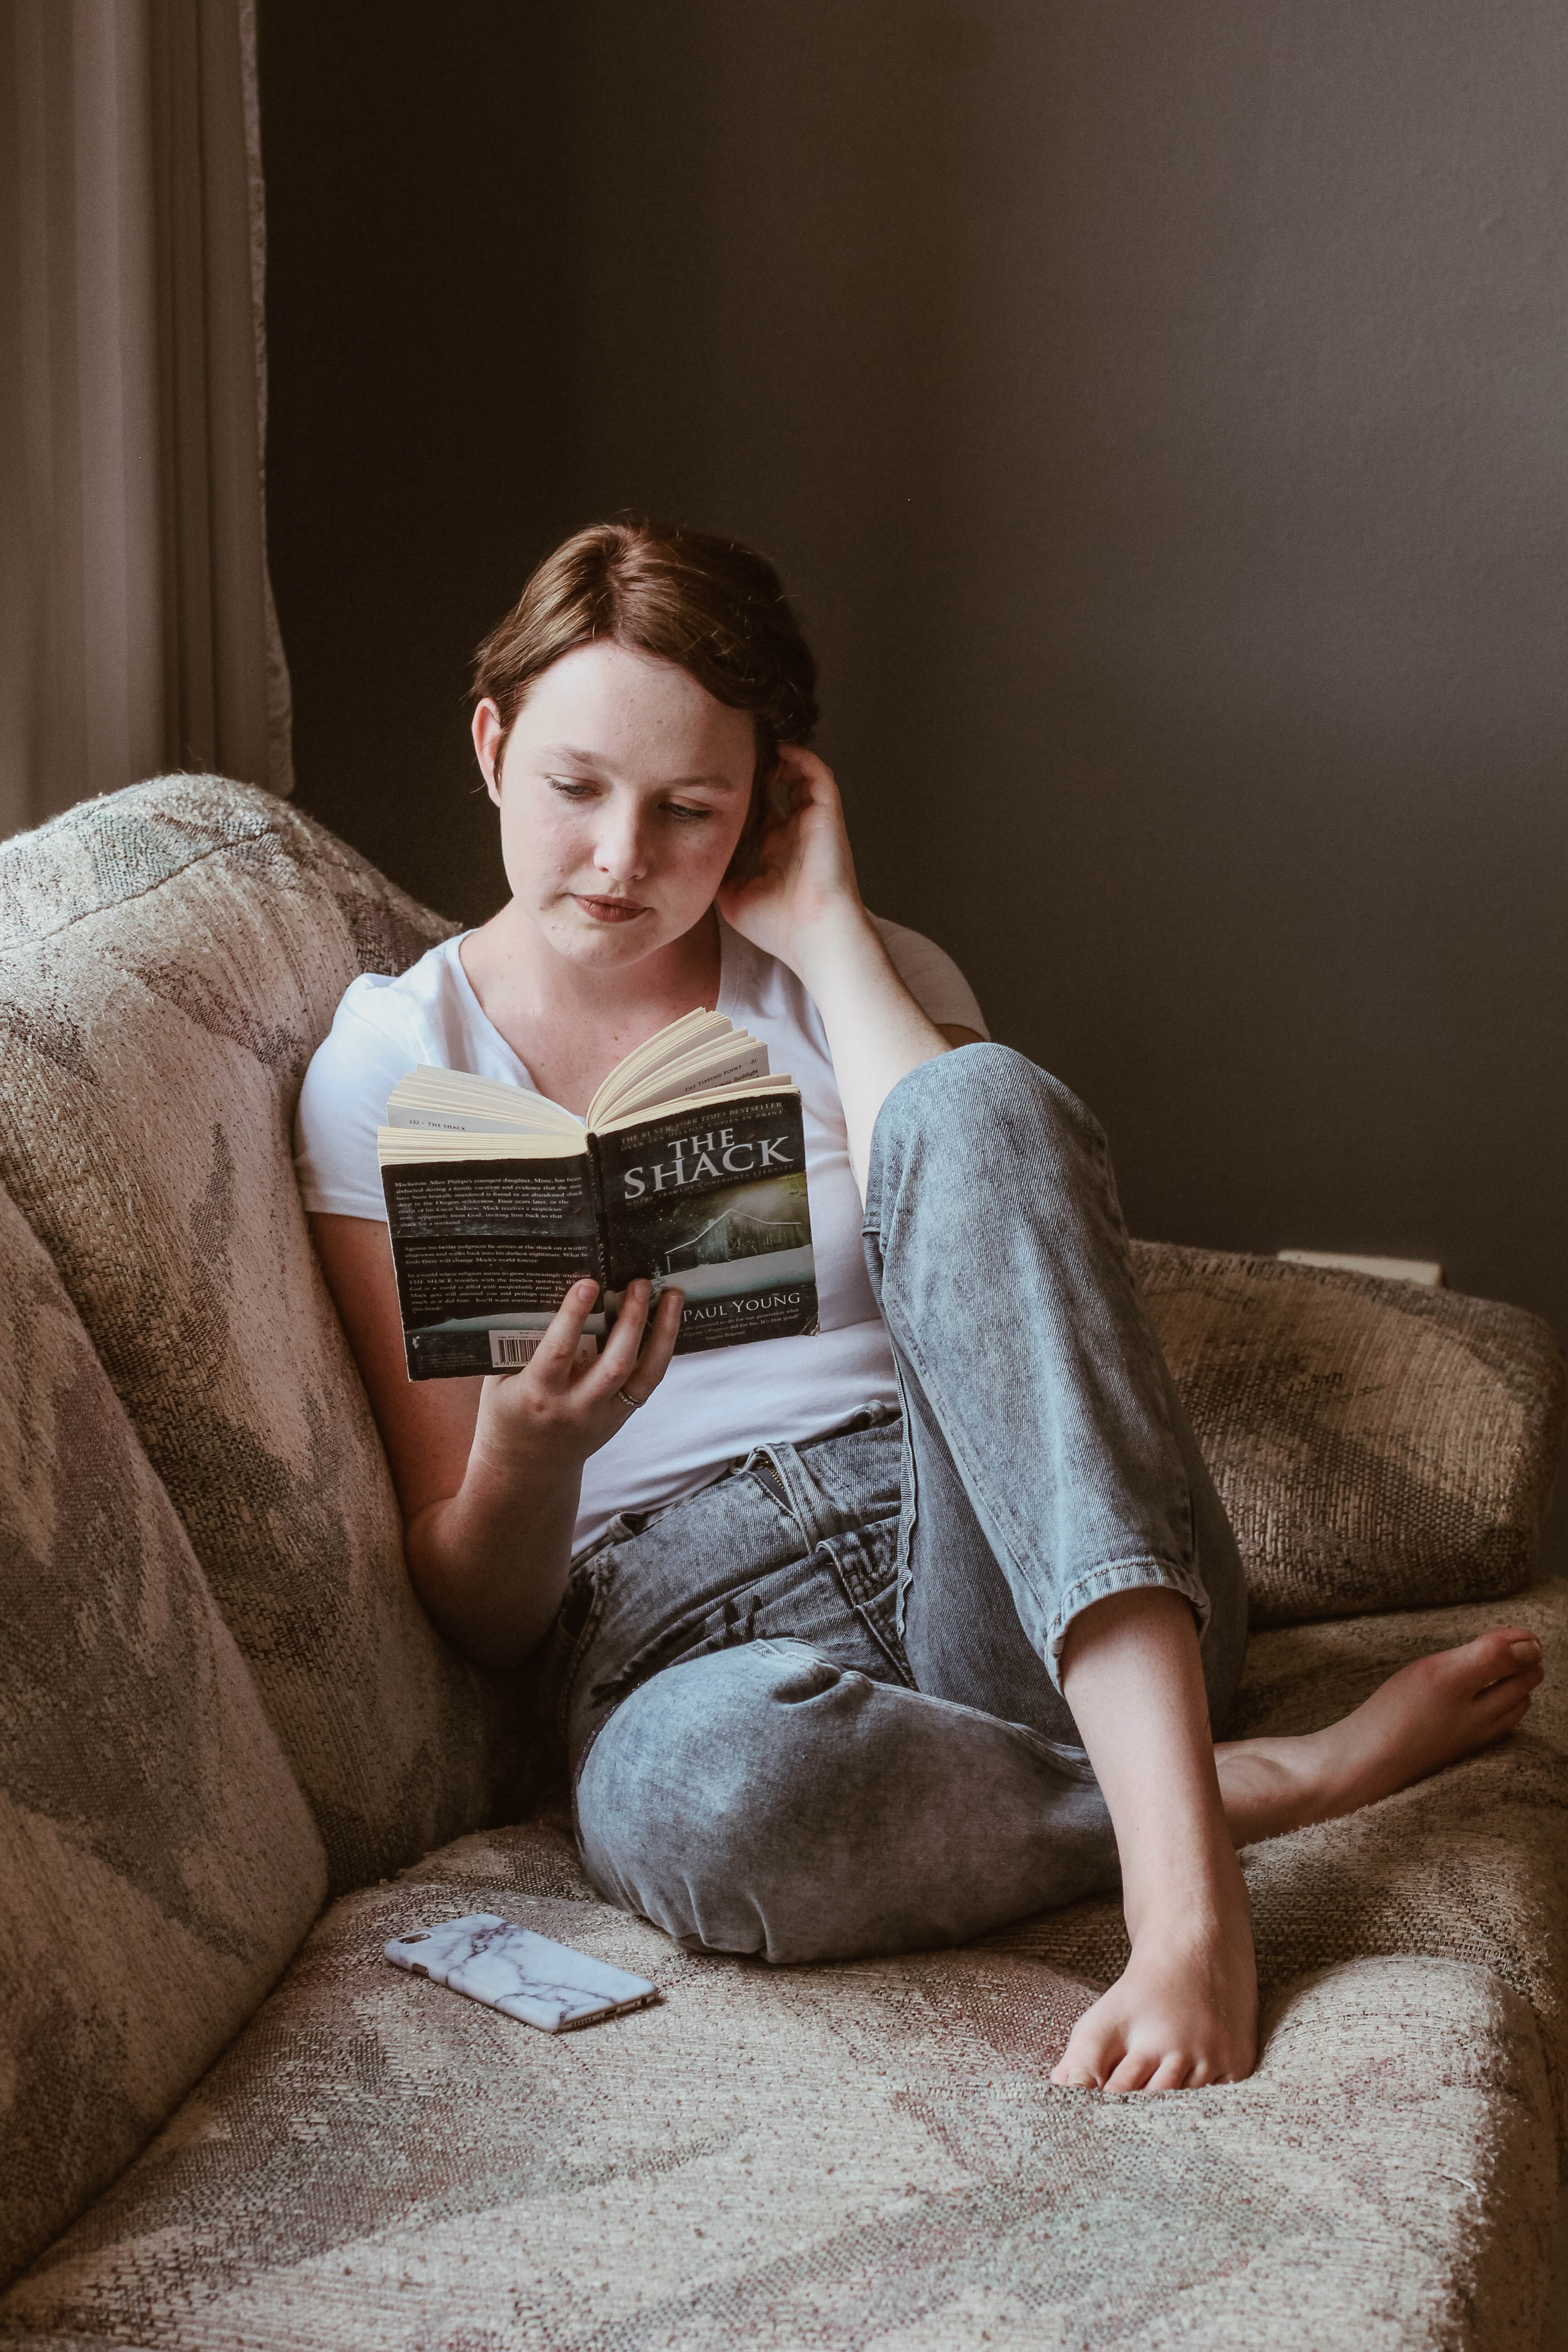 woman sitting on sofa while reading book inside room